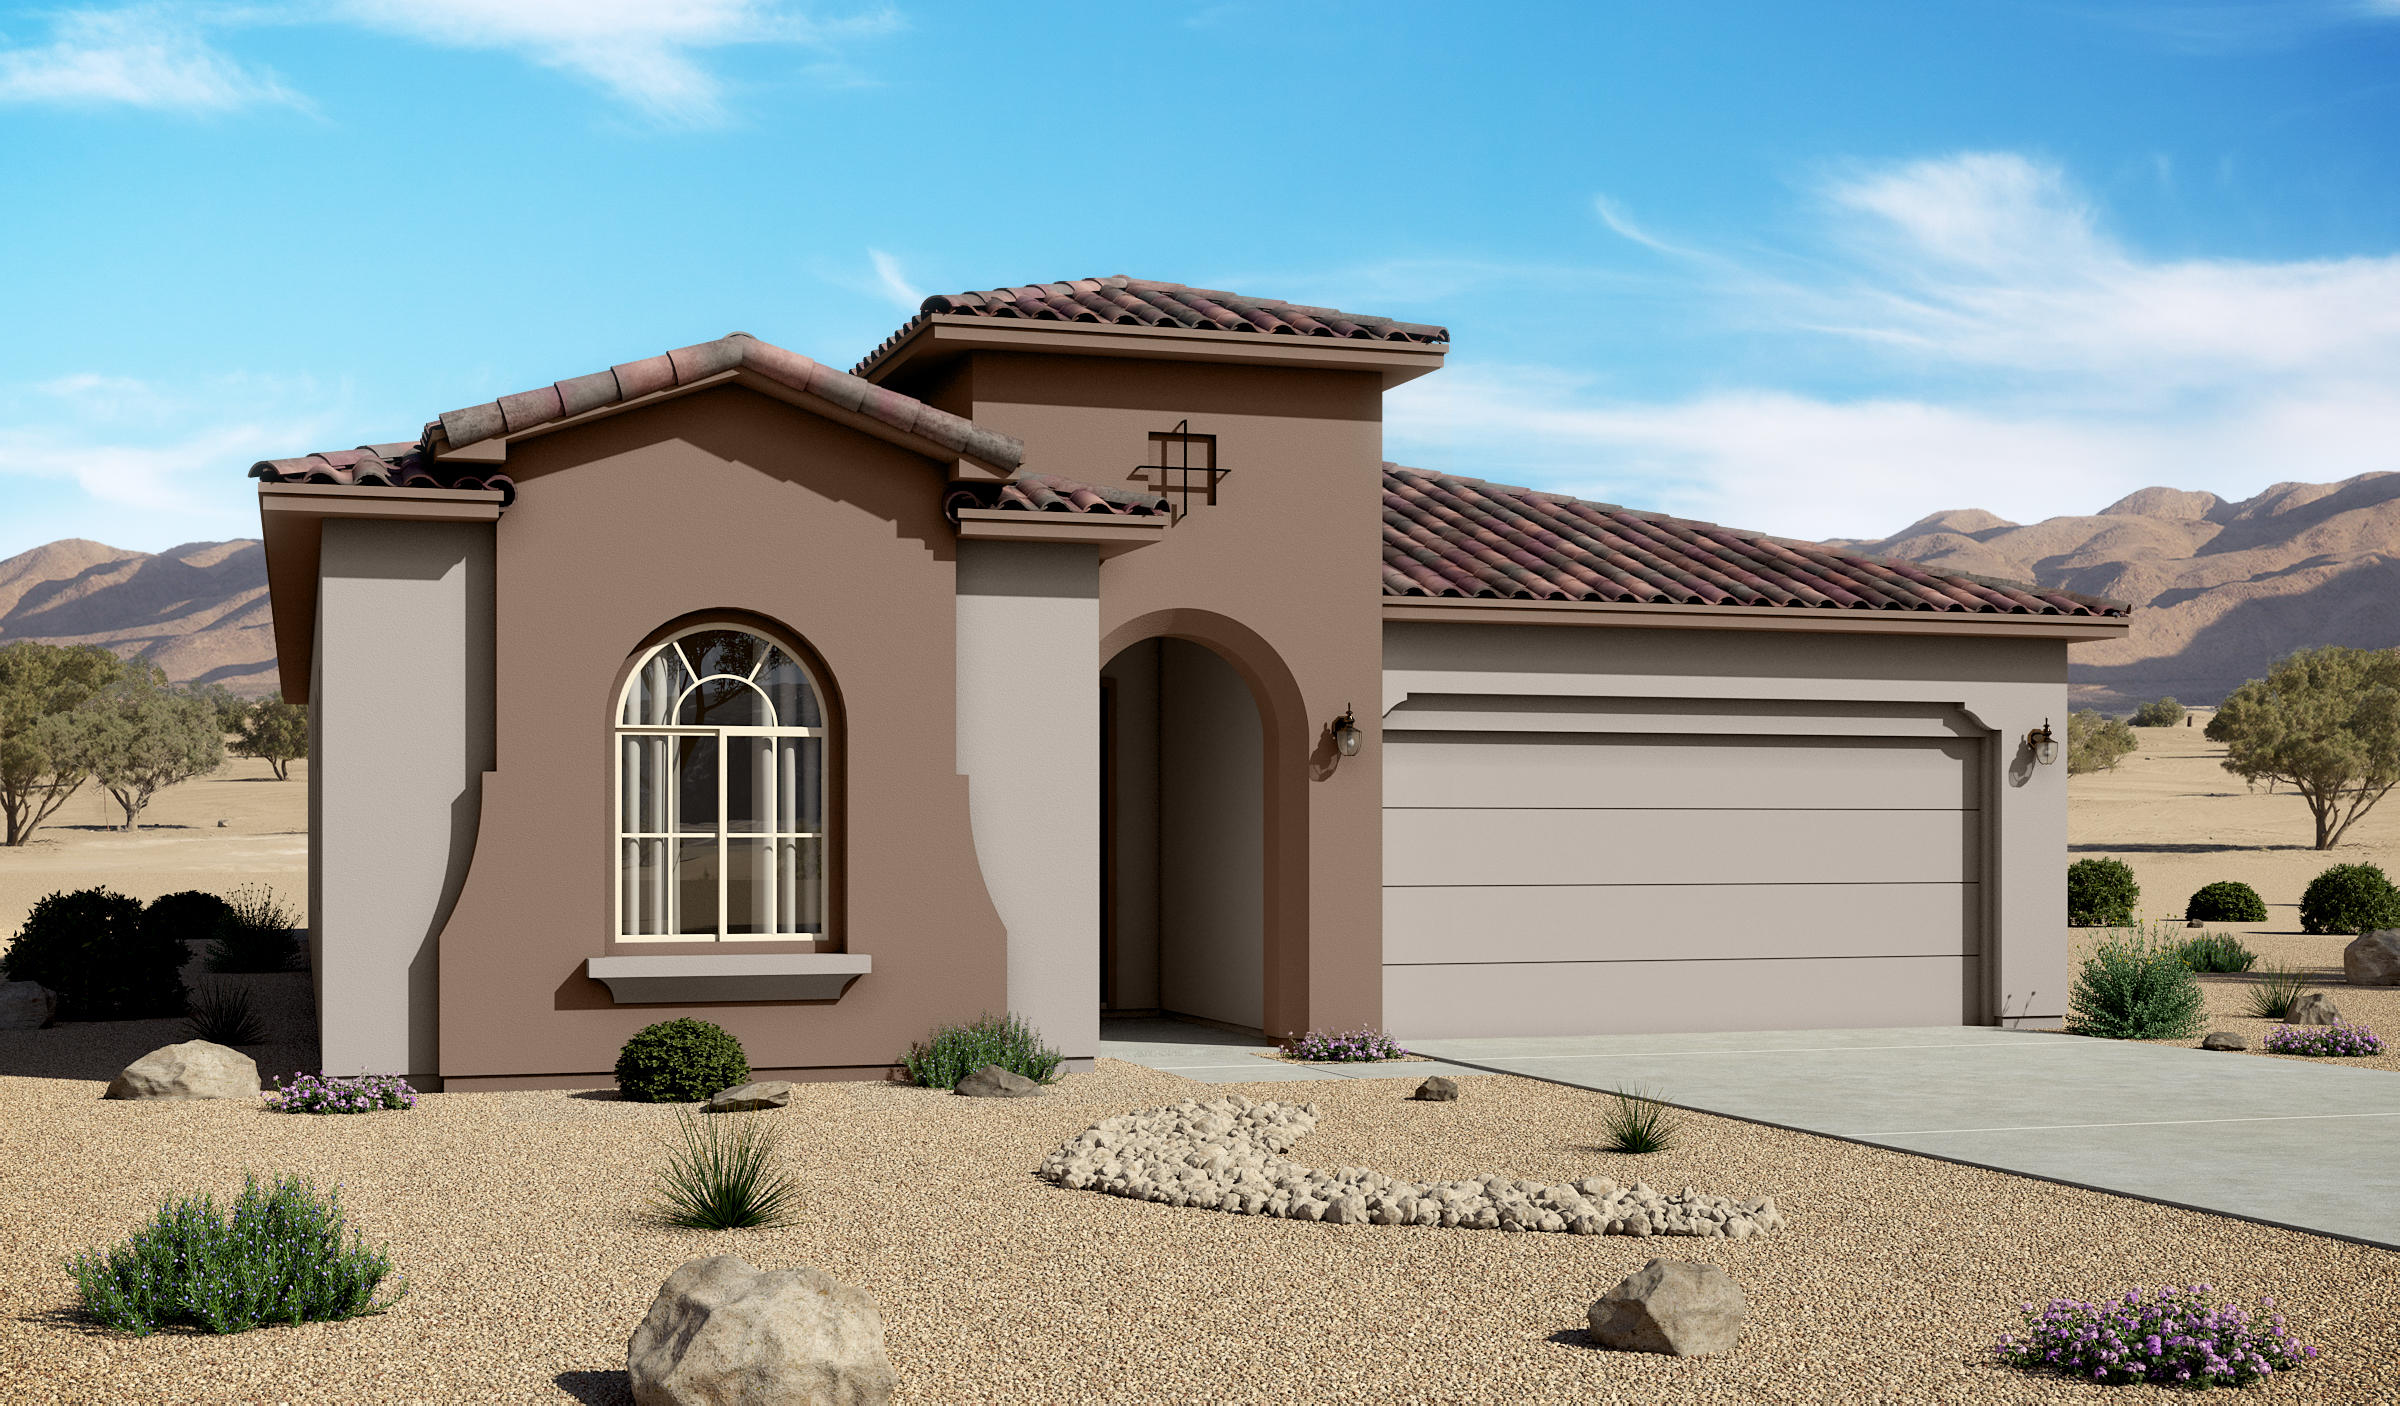 Estimated Completion  12/14/20202119 sf Mediterranean12'x 8' 3 Panel Stacking doors, ceiling beams, Barn door, Gourmet kitchen with pot filler, Tiled floors and bathroom walls; carpet in bedrooms and closets.3 br, 2.5 baths, 2 car garage